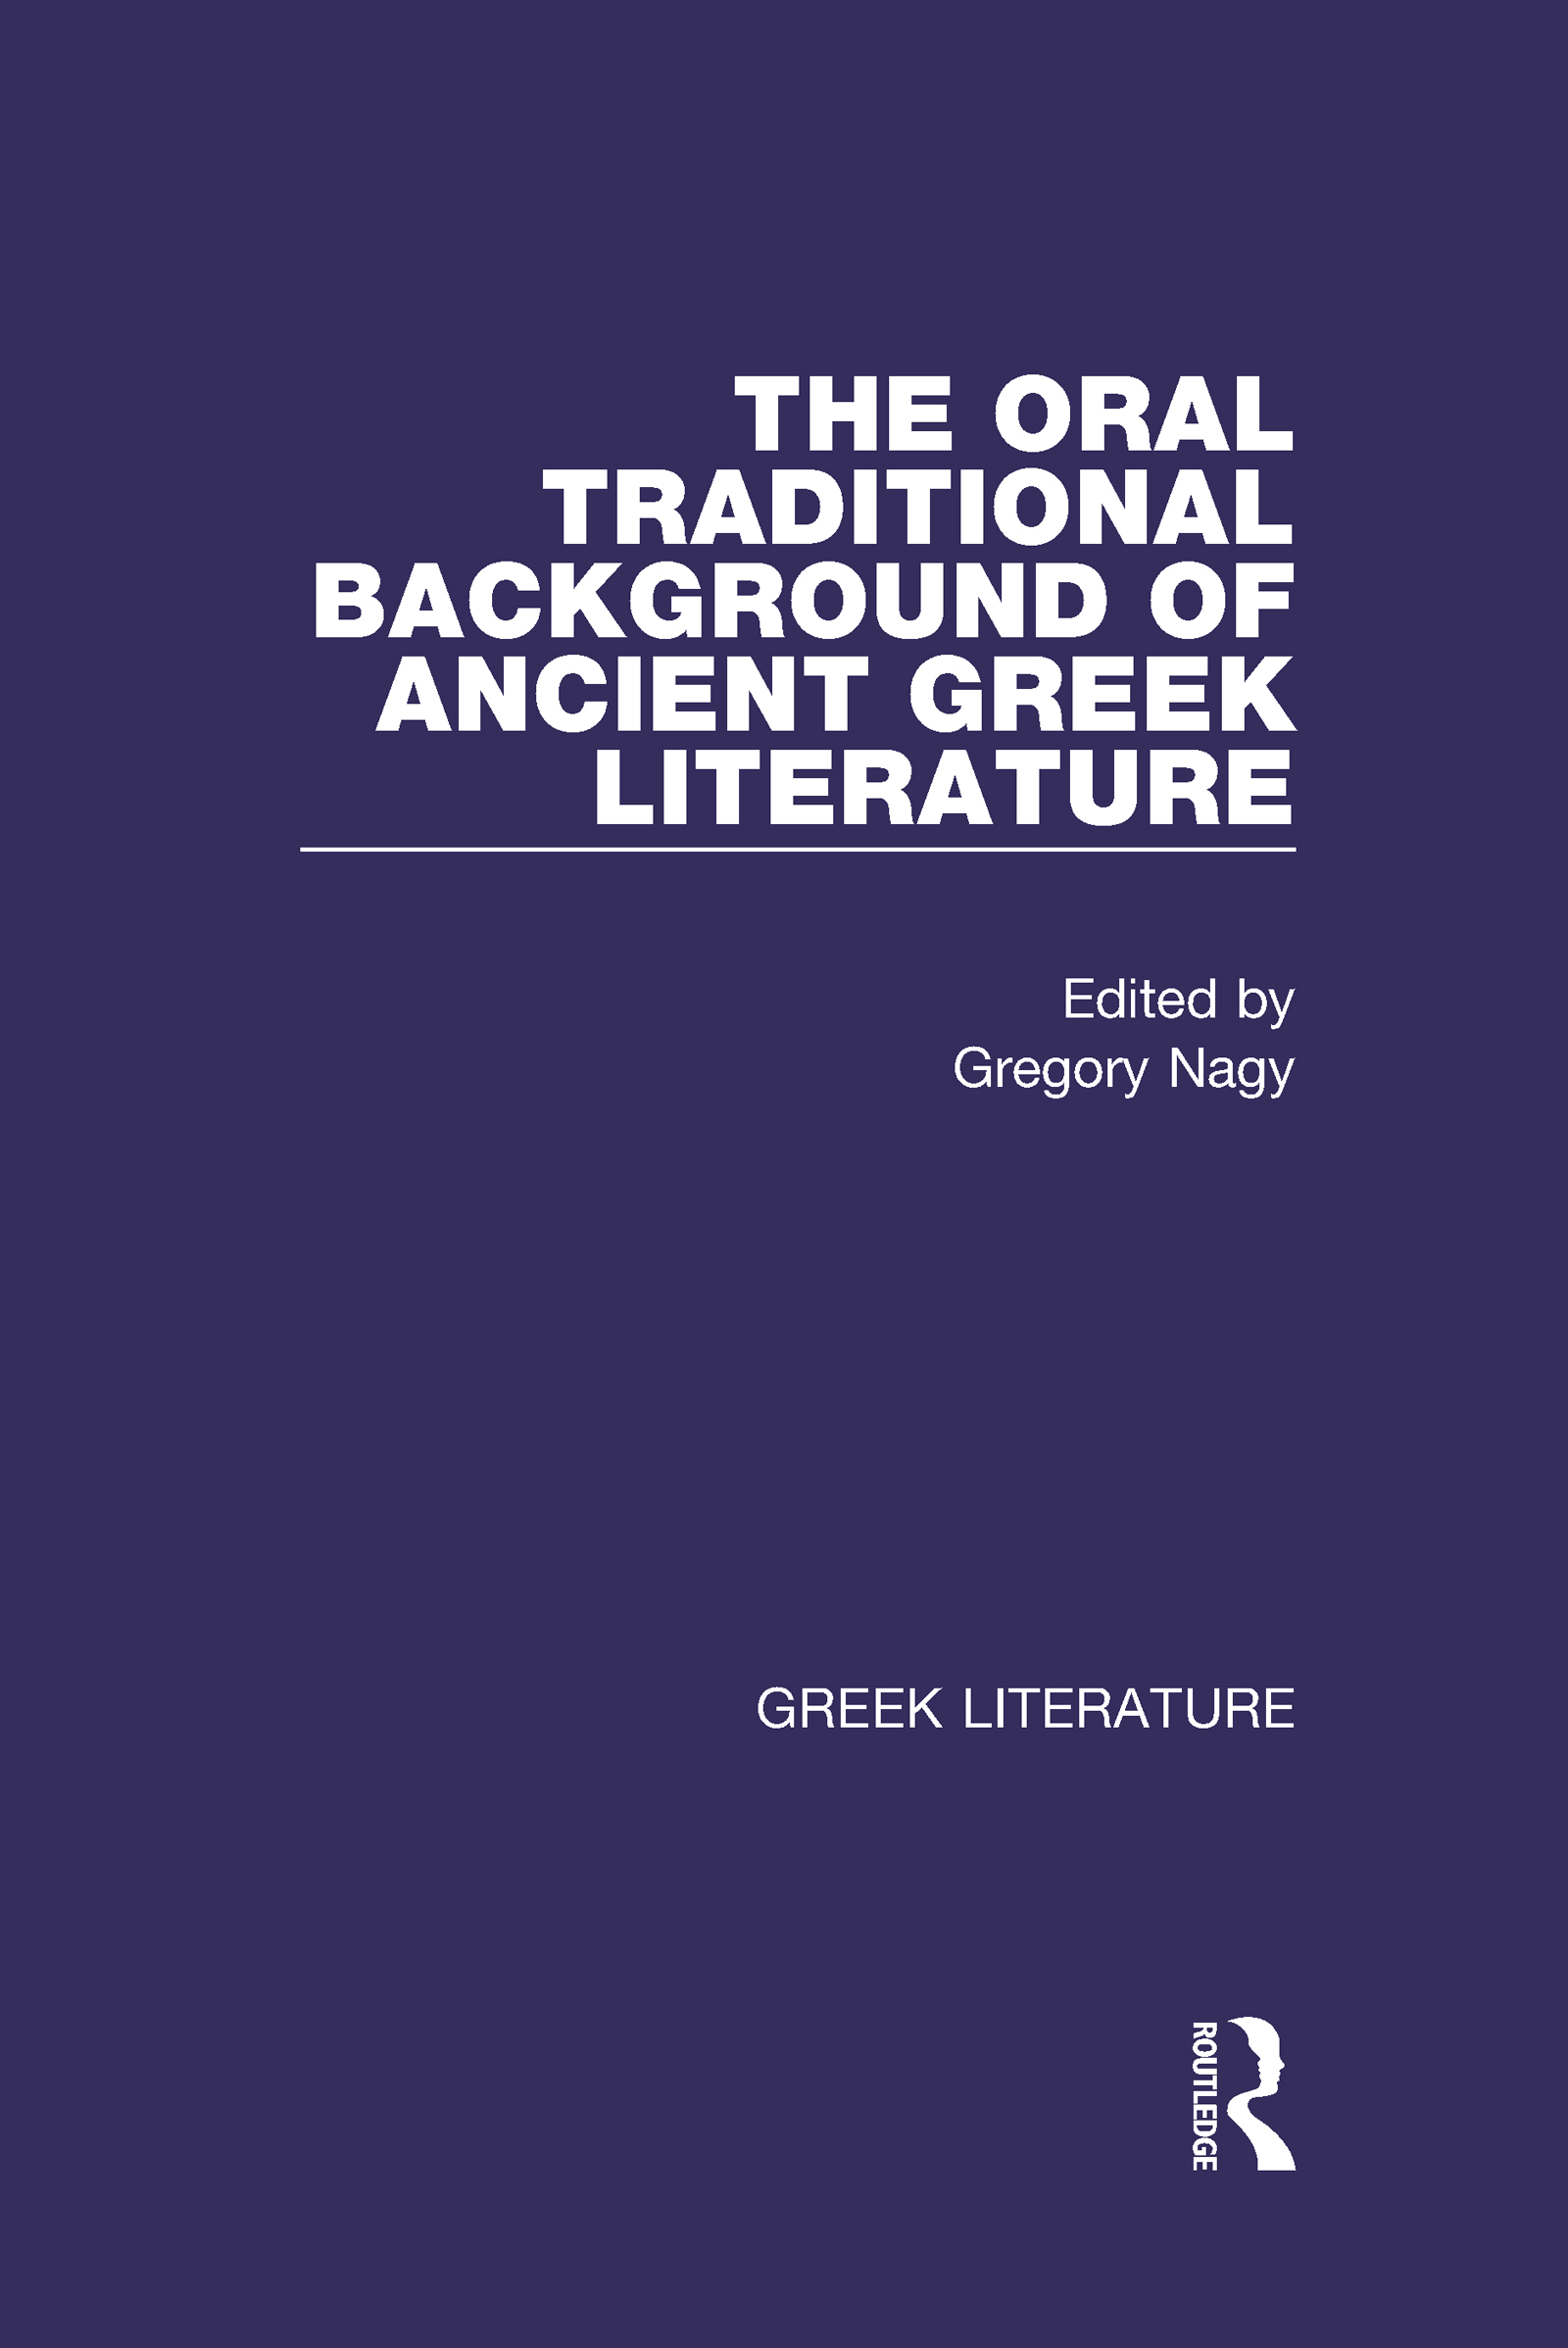 The Oral Traditional Background of Ancient Greek Literature